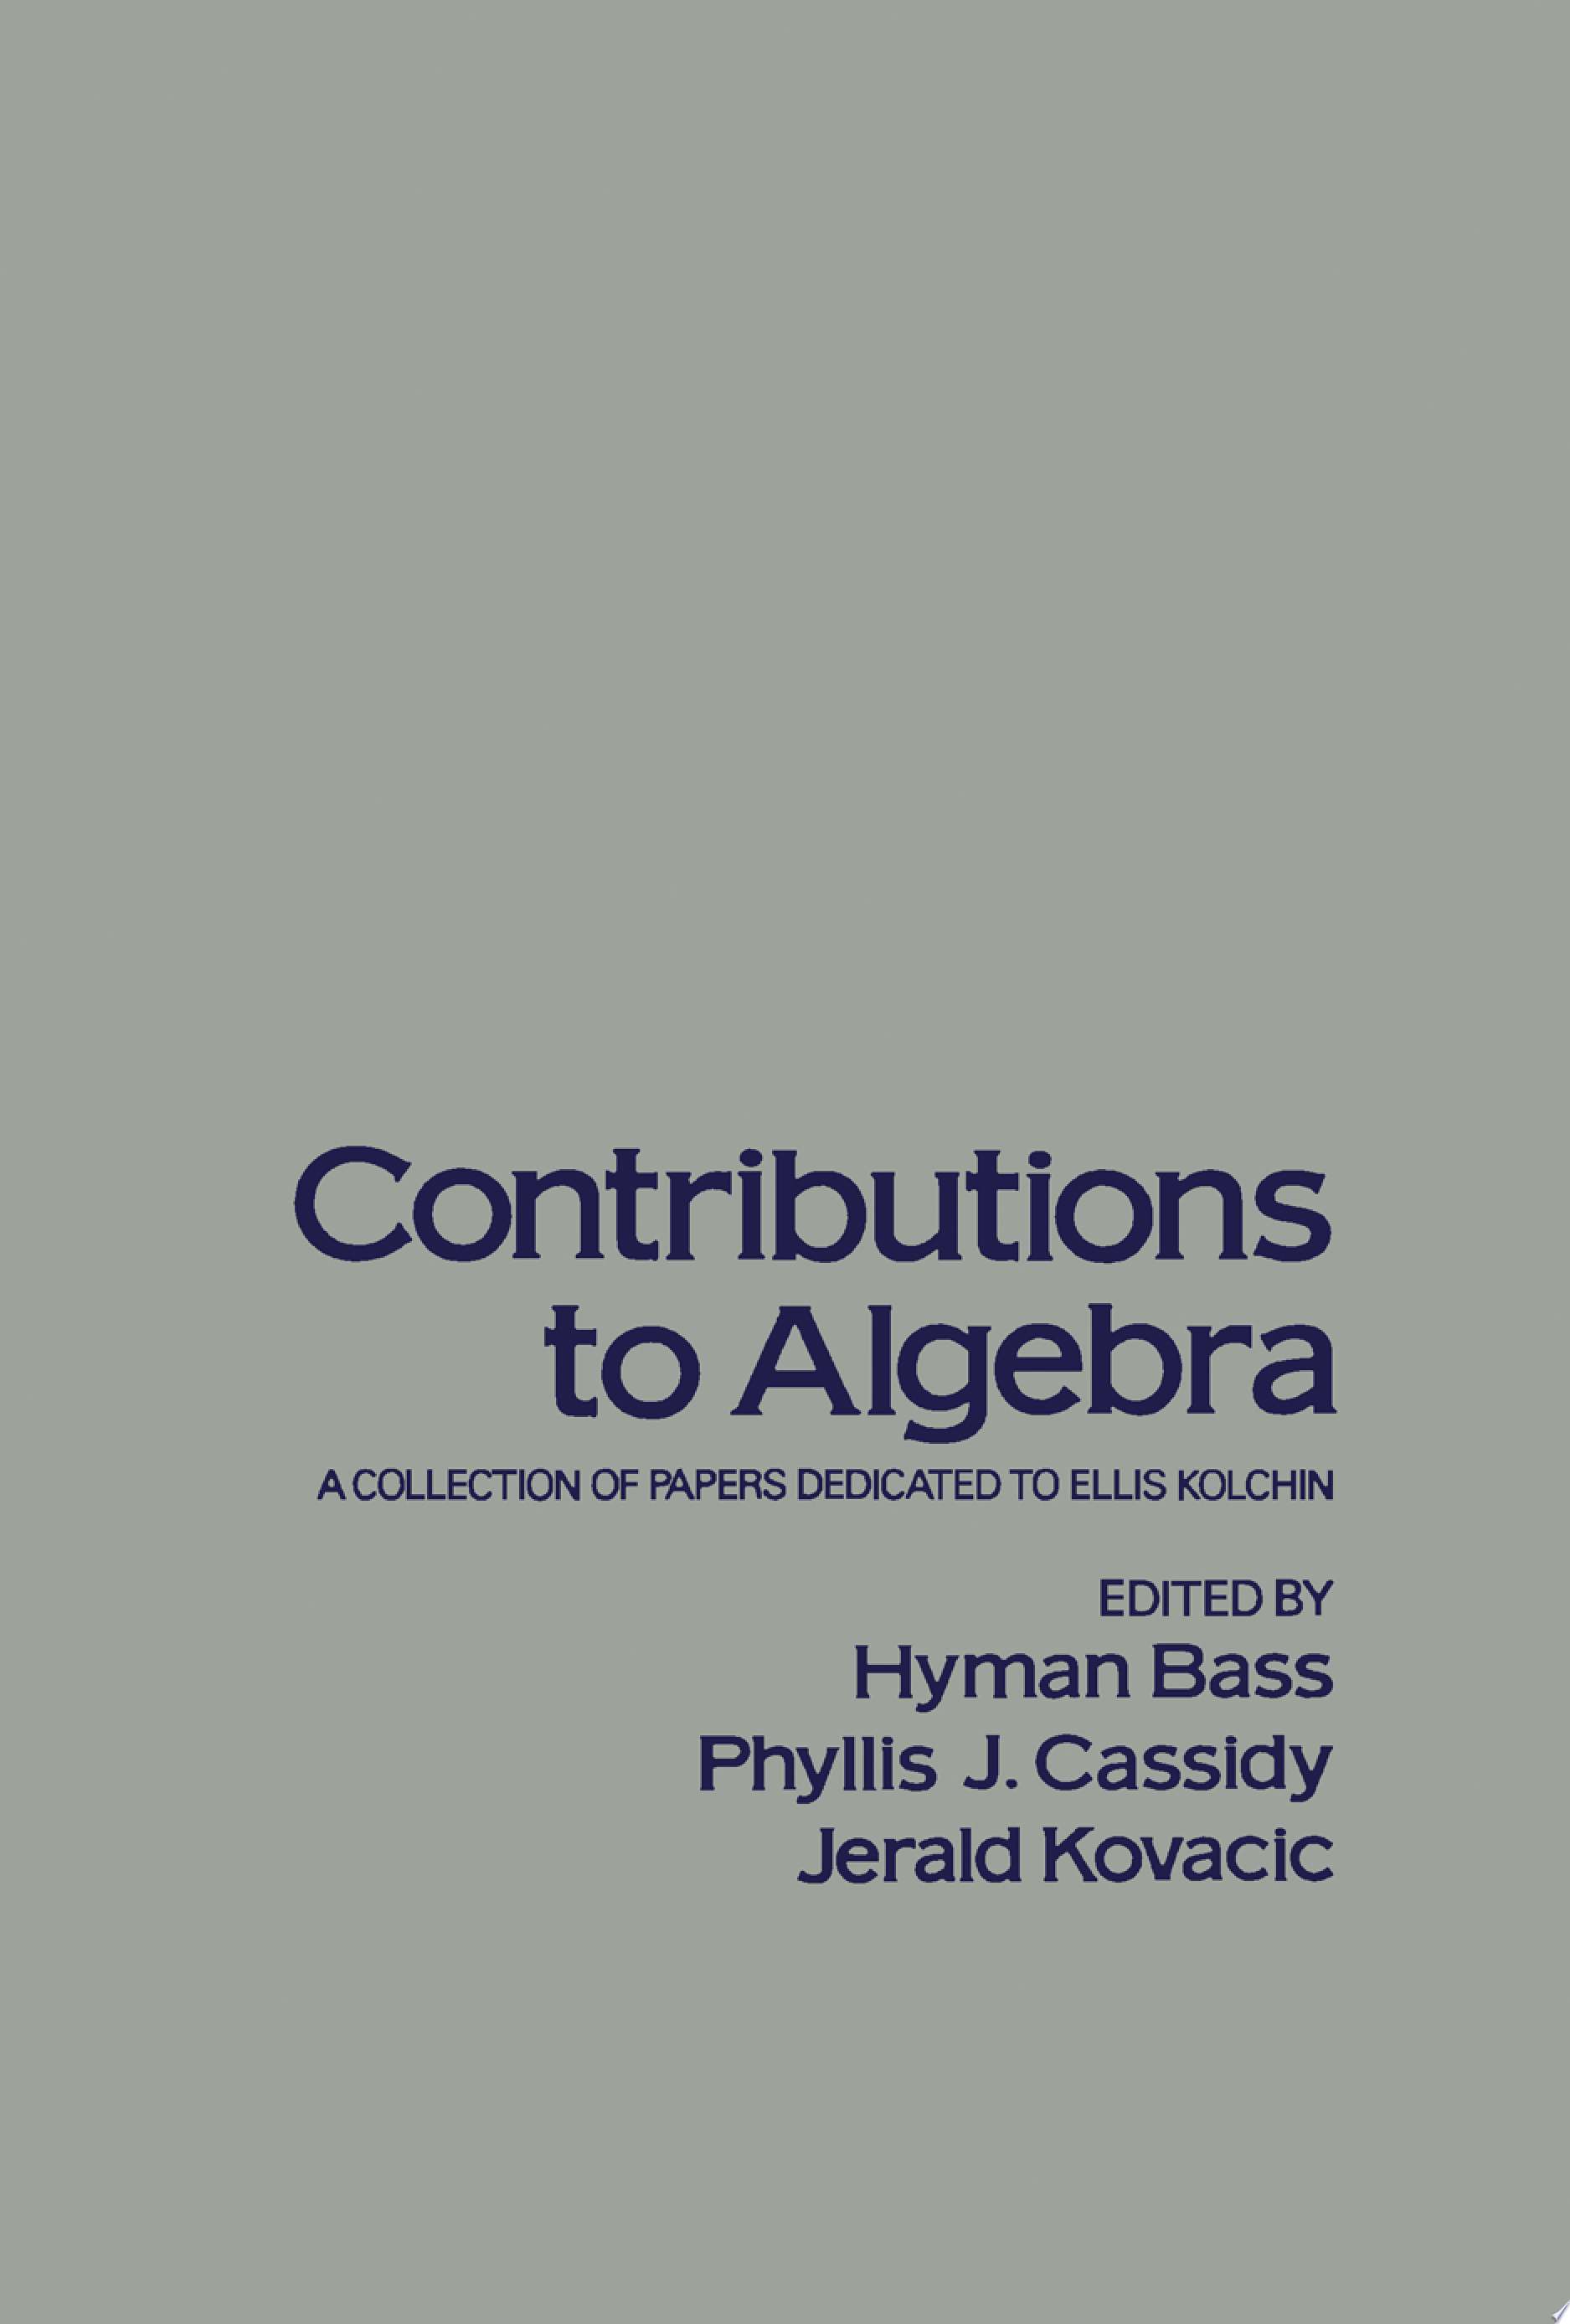 Contributions to Algebra